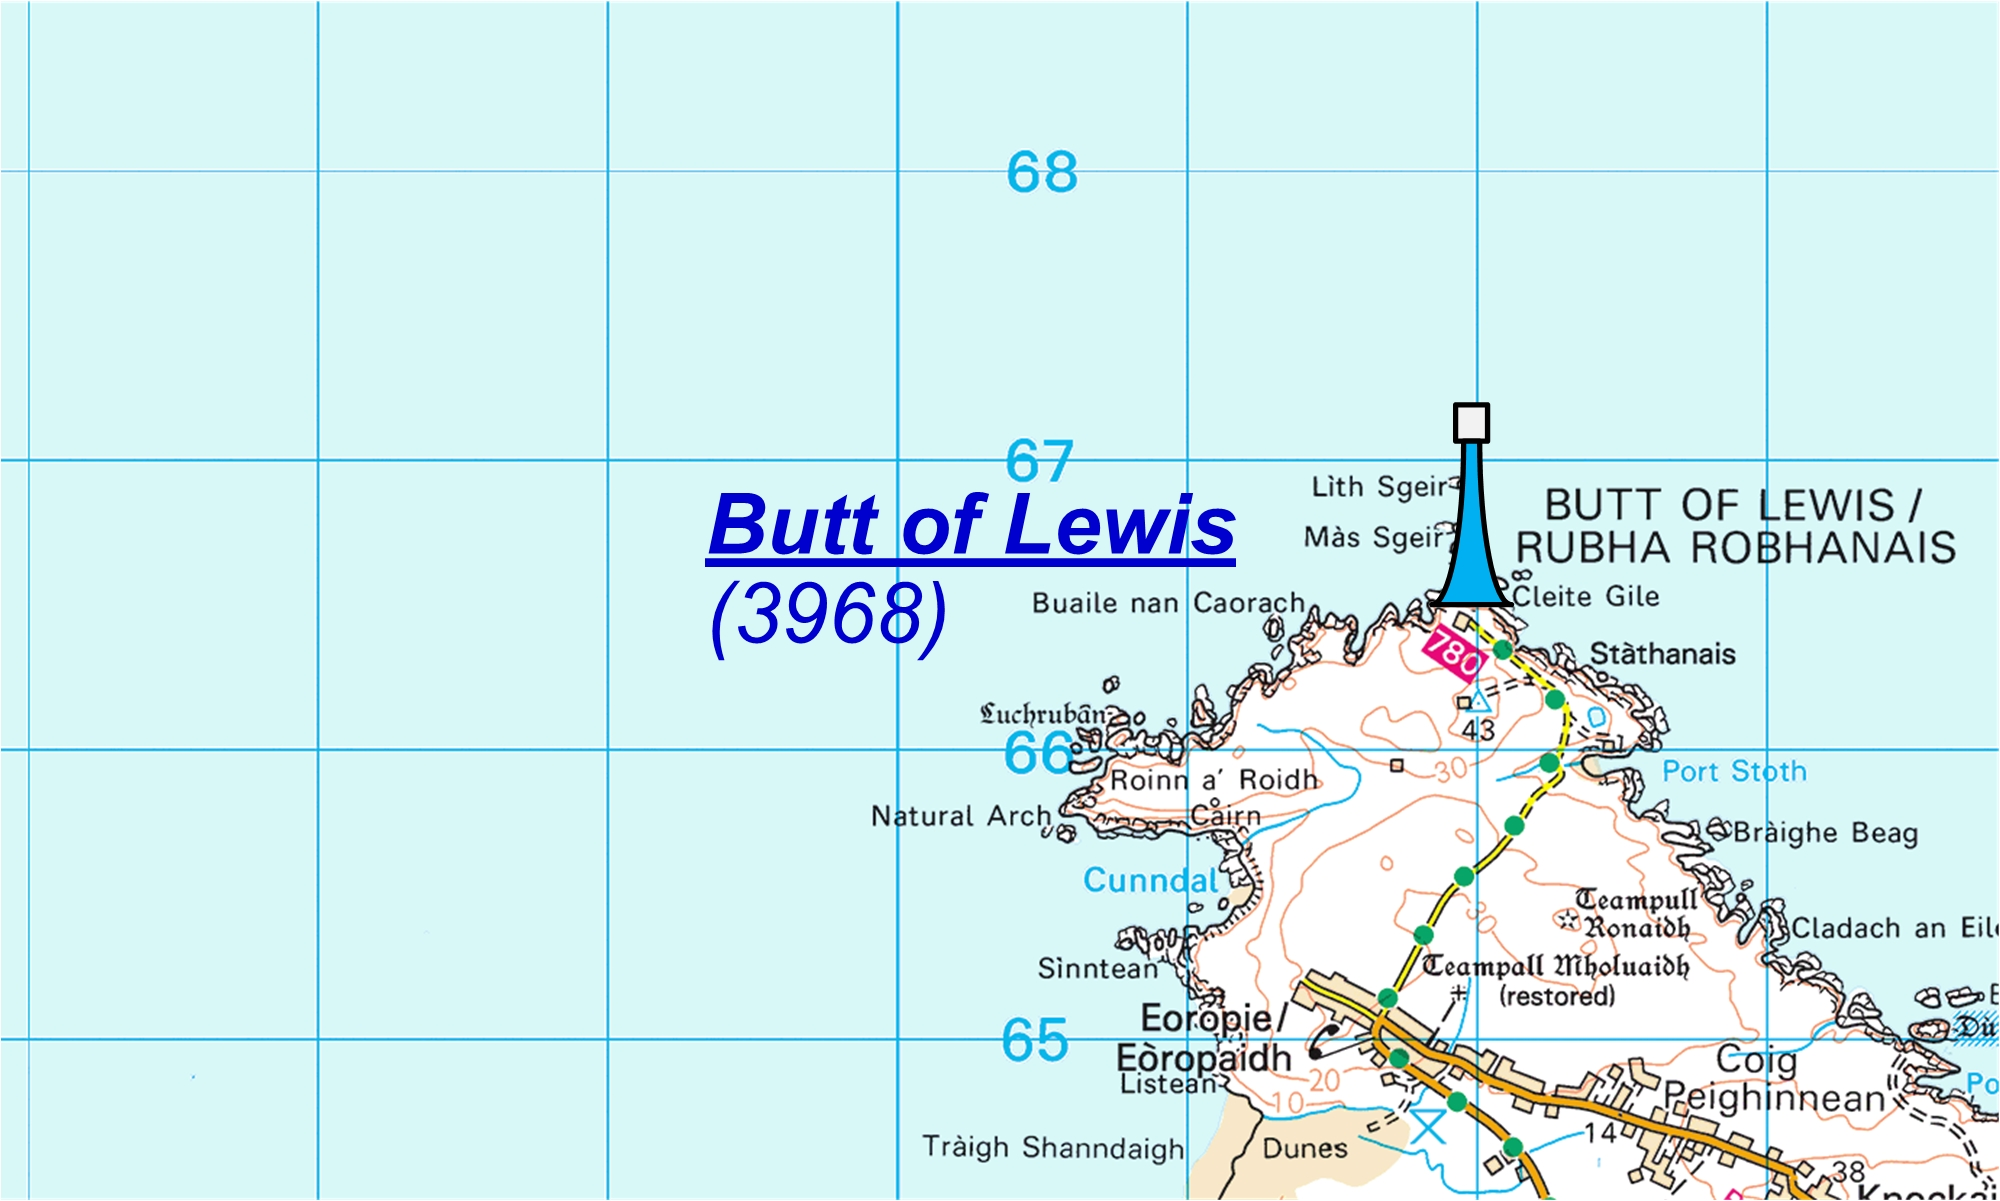 Butt of Lewis map